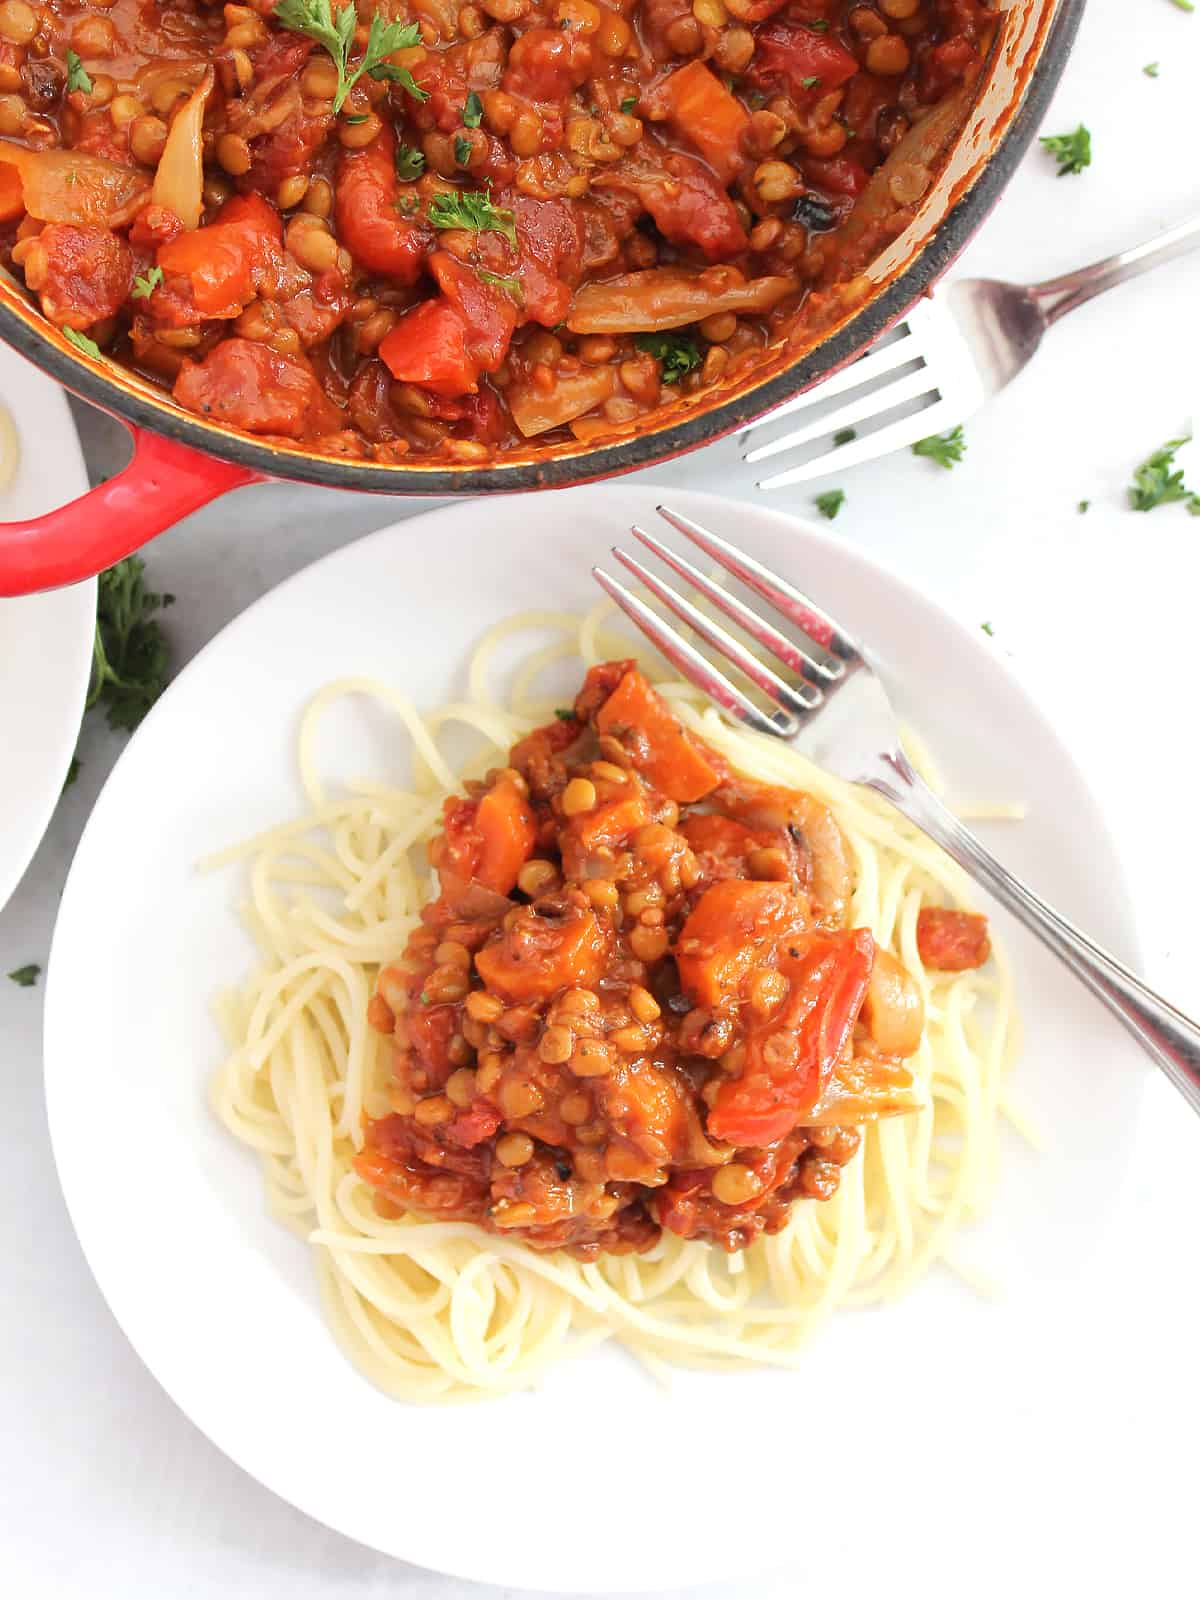 Overhead shot of the bolognese served on spaghetti with a fork on a plate.